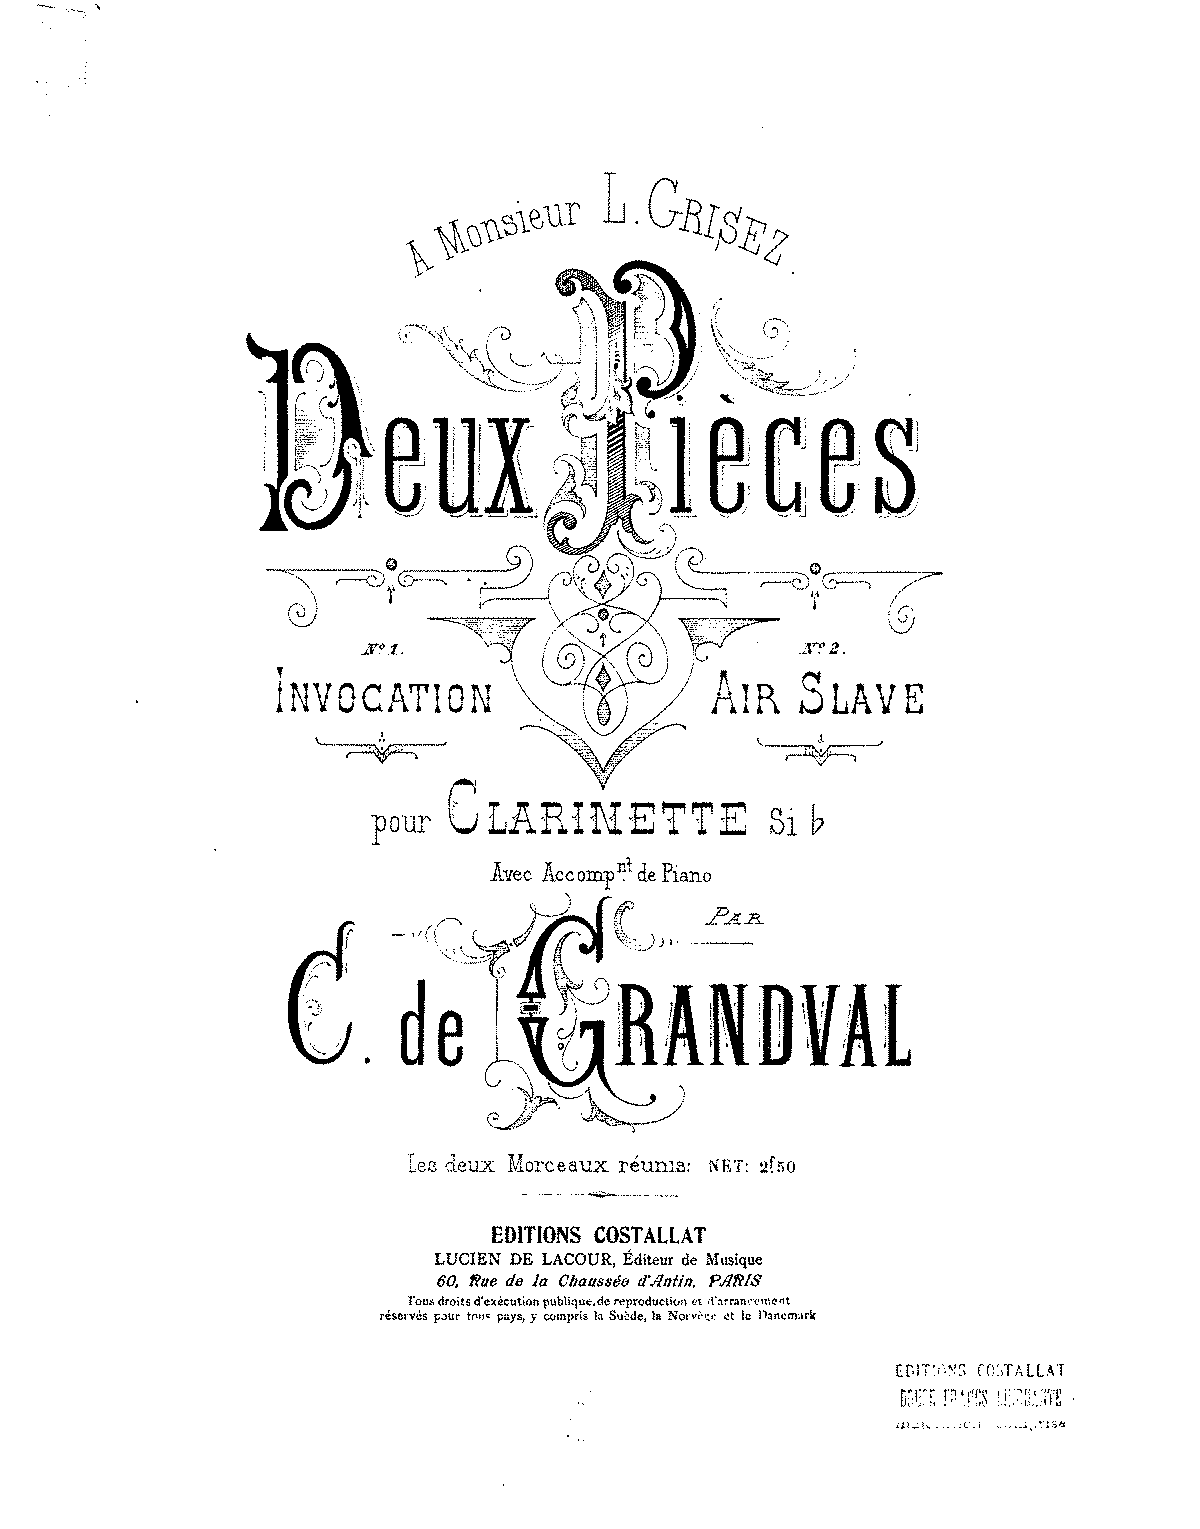 PMLP51123-grandval 2 pieces clarinet.pdf